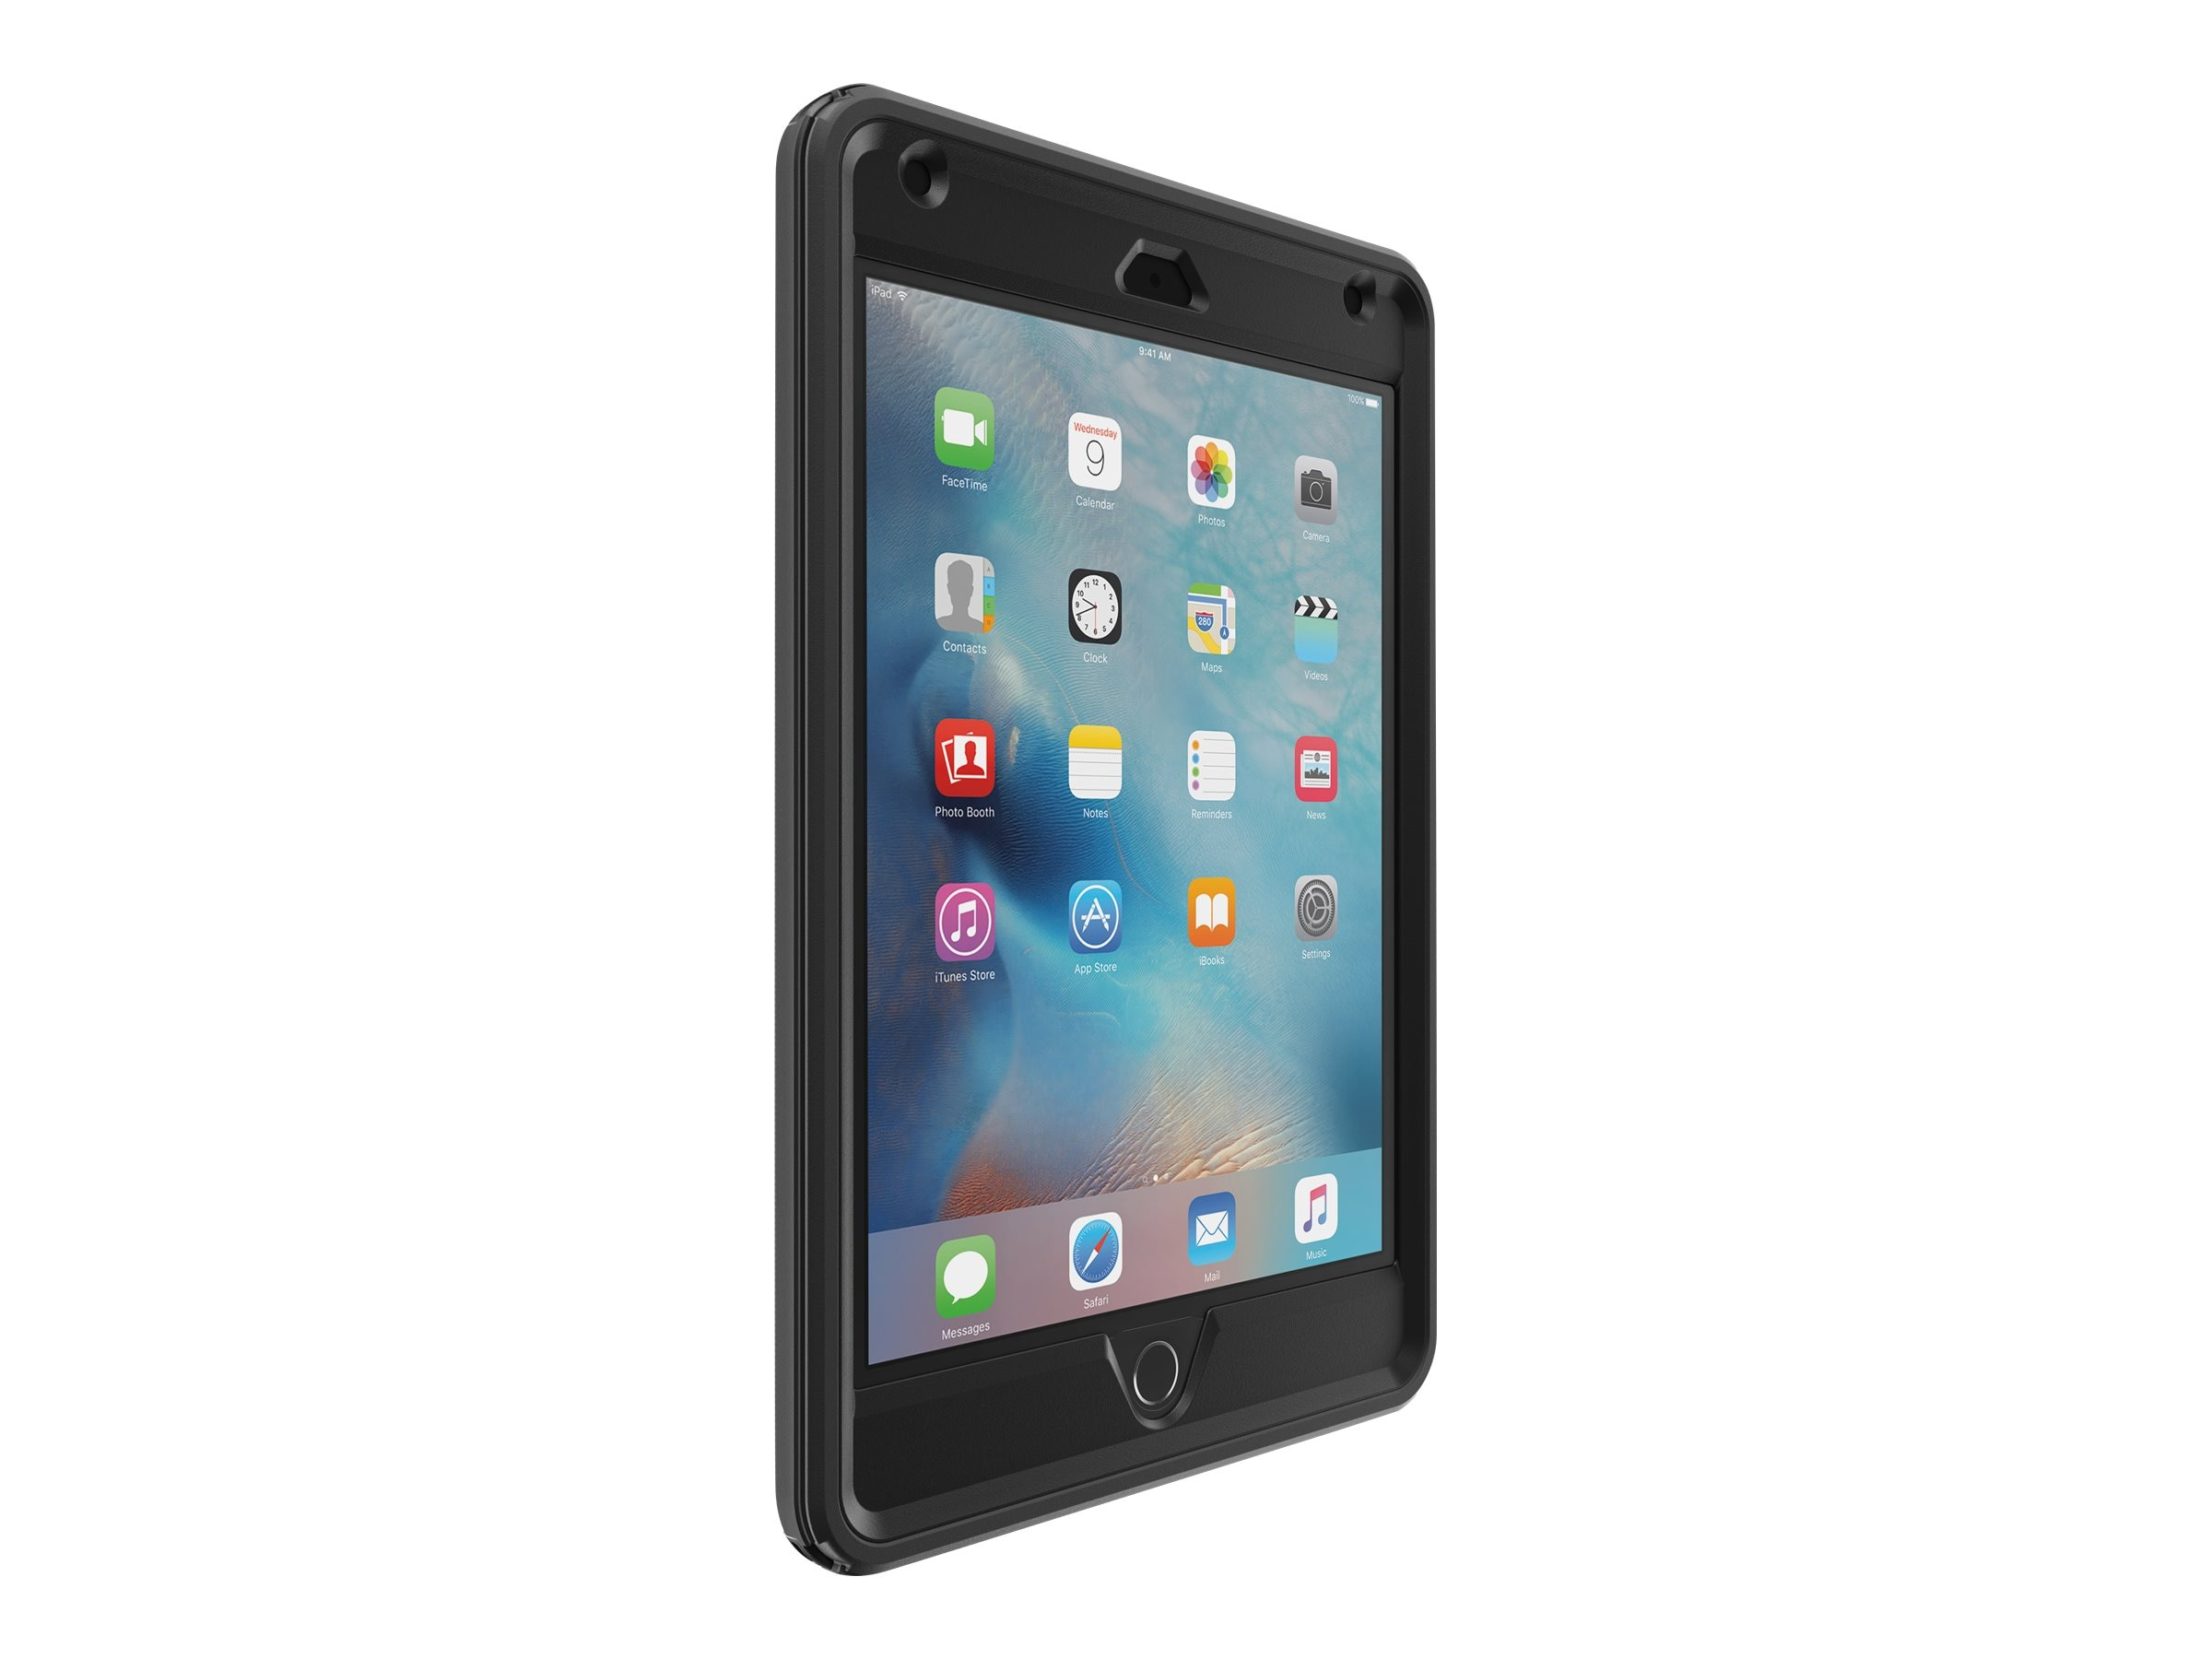 OtterBox Defender Folio for iPad mini 4 Pro Pack B2B, Black, 77-52828, 30861881, Carrying Cases - Tablets & eReaders